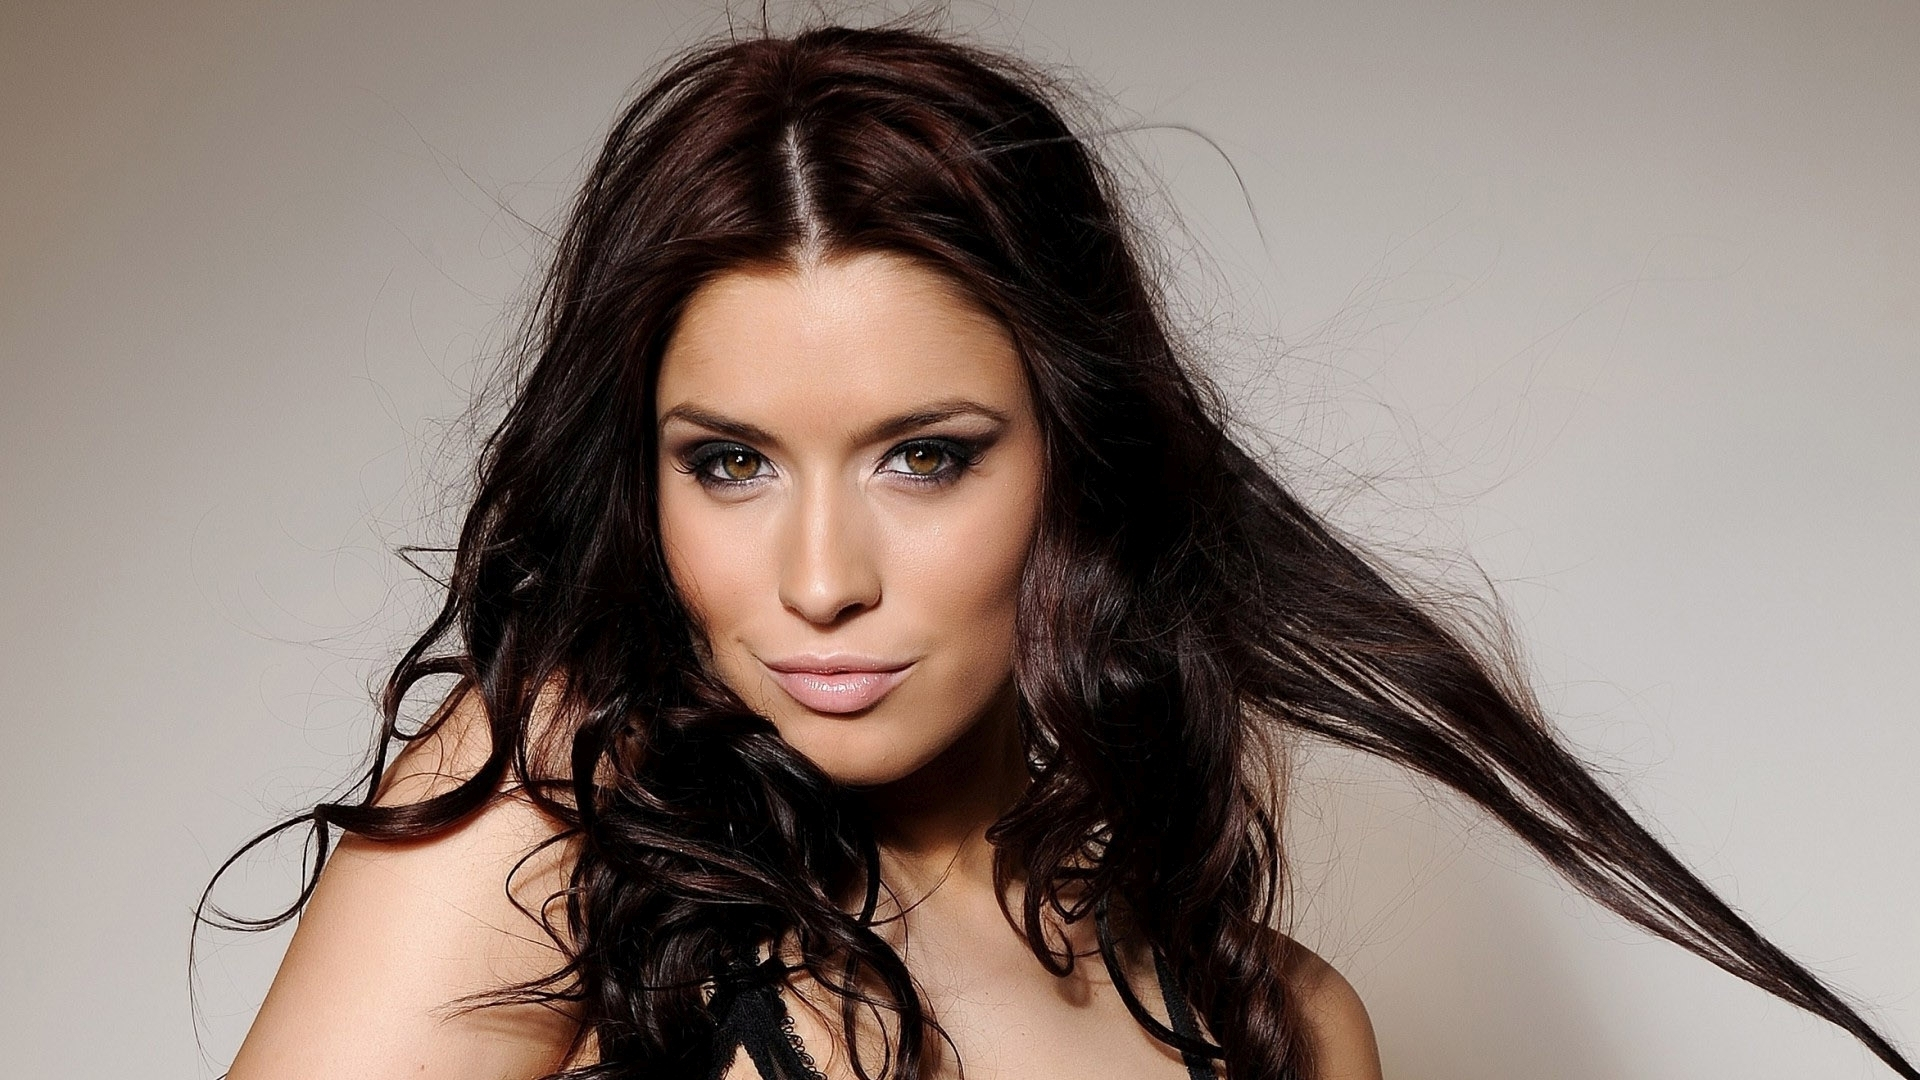 Pictures Of Kelly Andrews